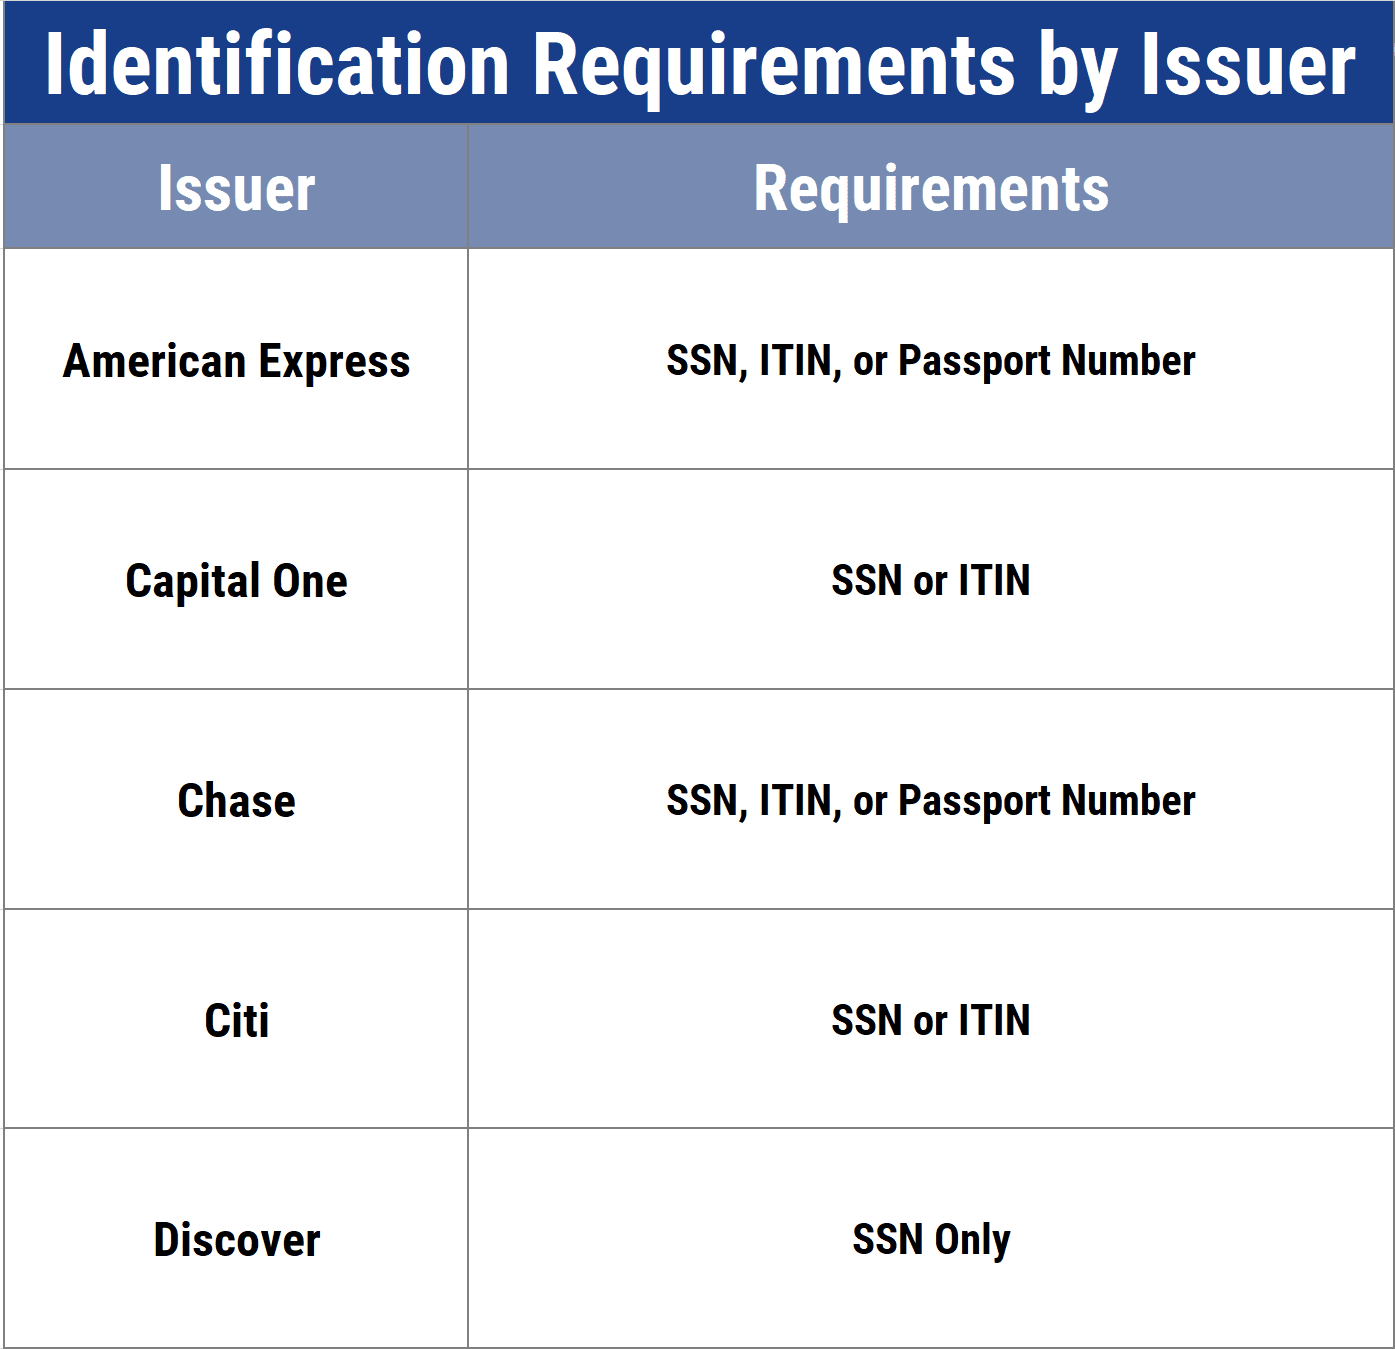 ID Requirements by Issuer